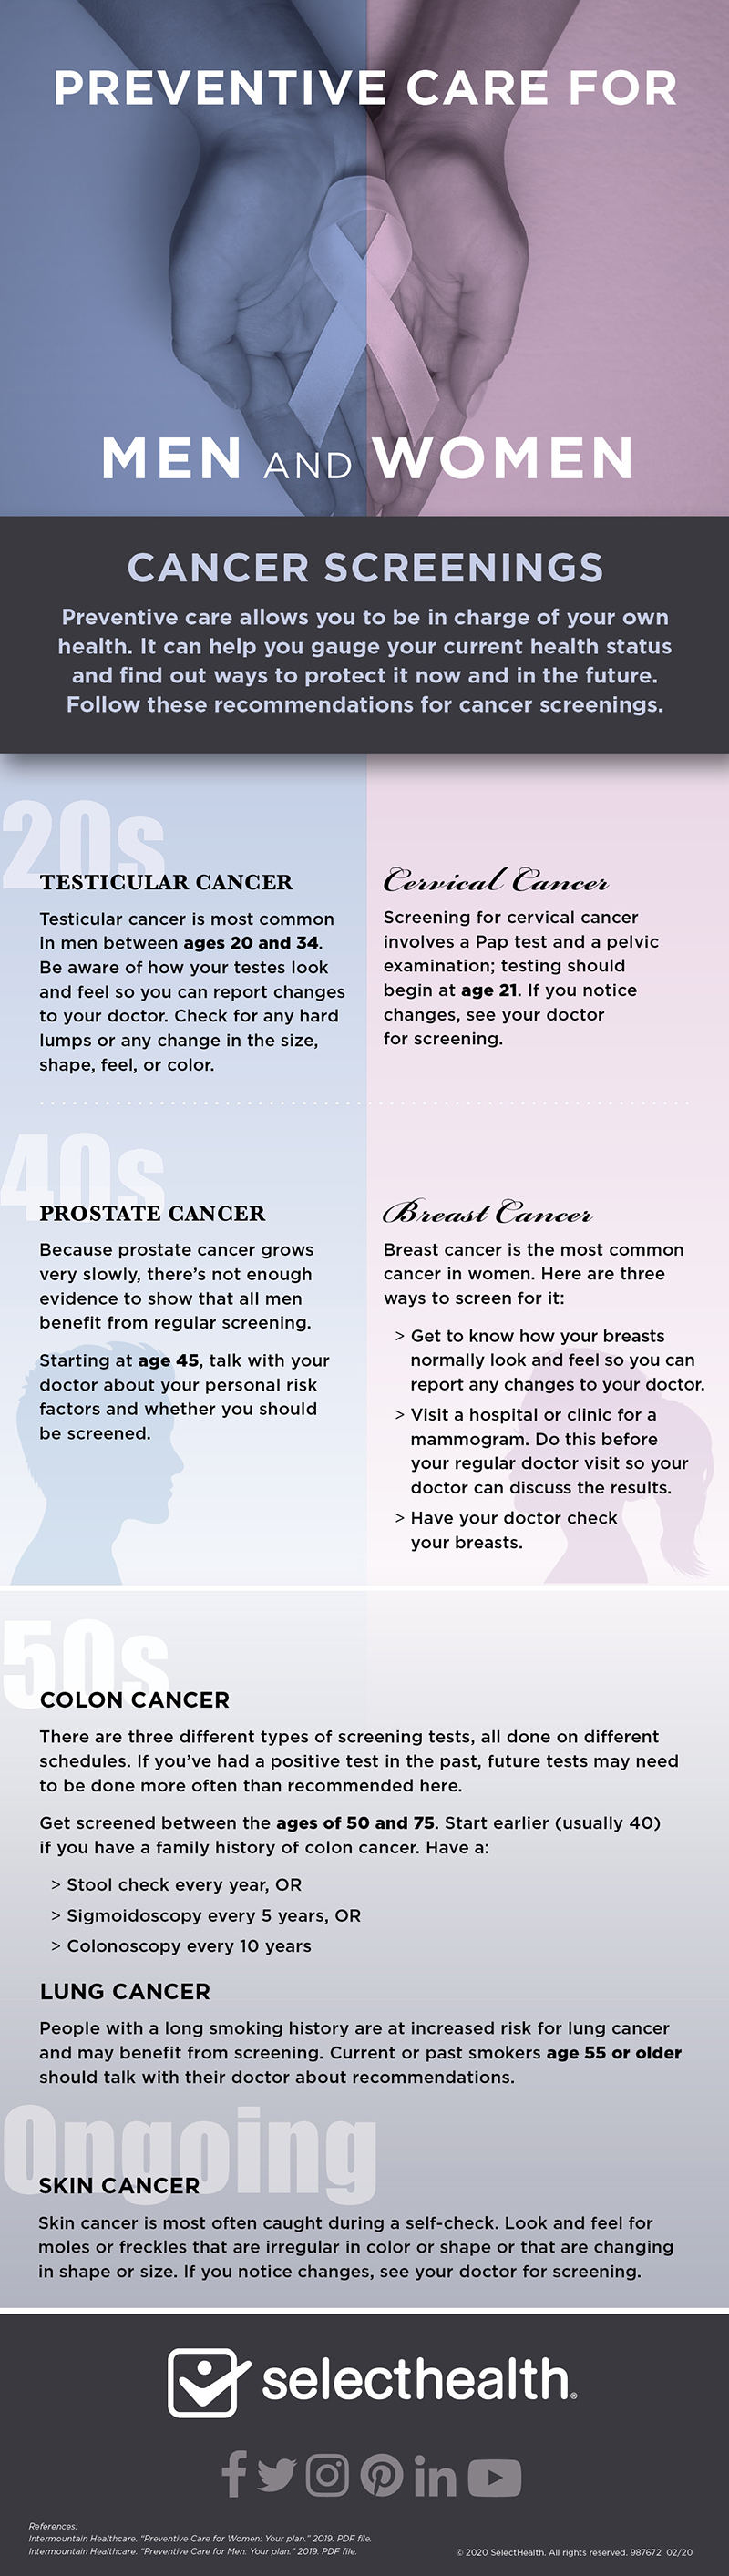 Infographic illustrating the various cancers and screenings for each